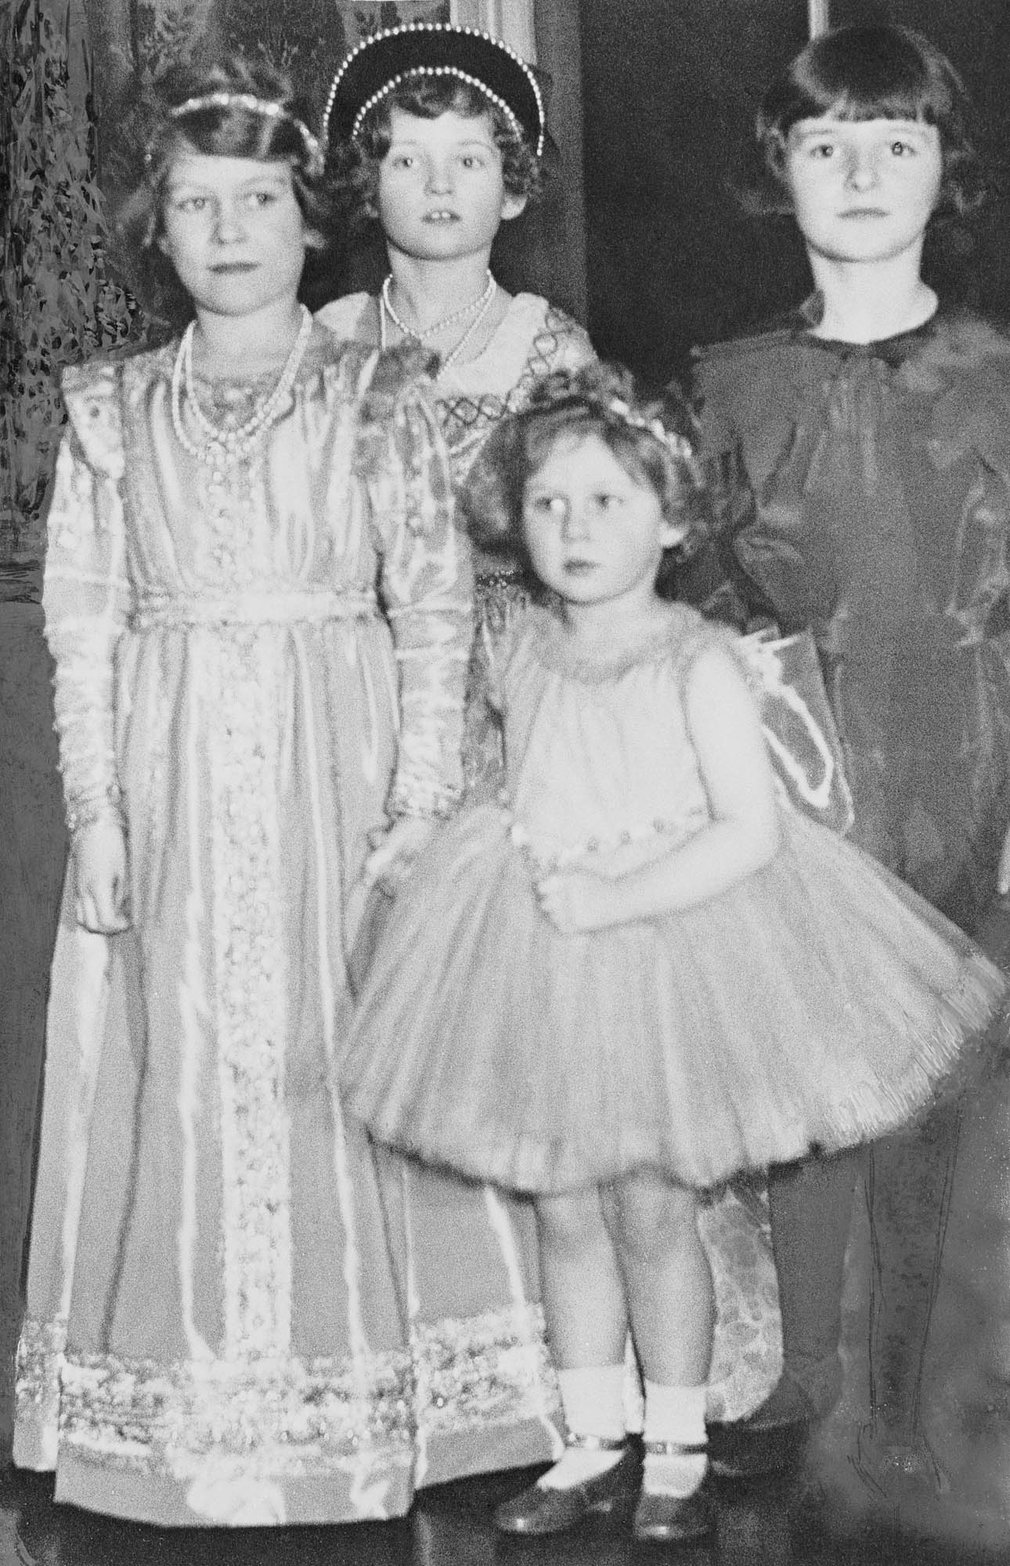 Photograph of Princess Elizabeth of York (1926- ) and Princess Margaret of York (1930-2002) attending a fancy dress party. The Princesses are photographed with two other unidentified girls.